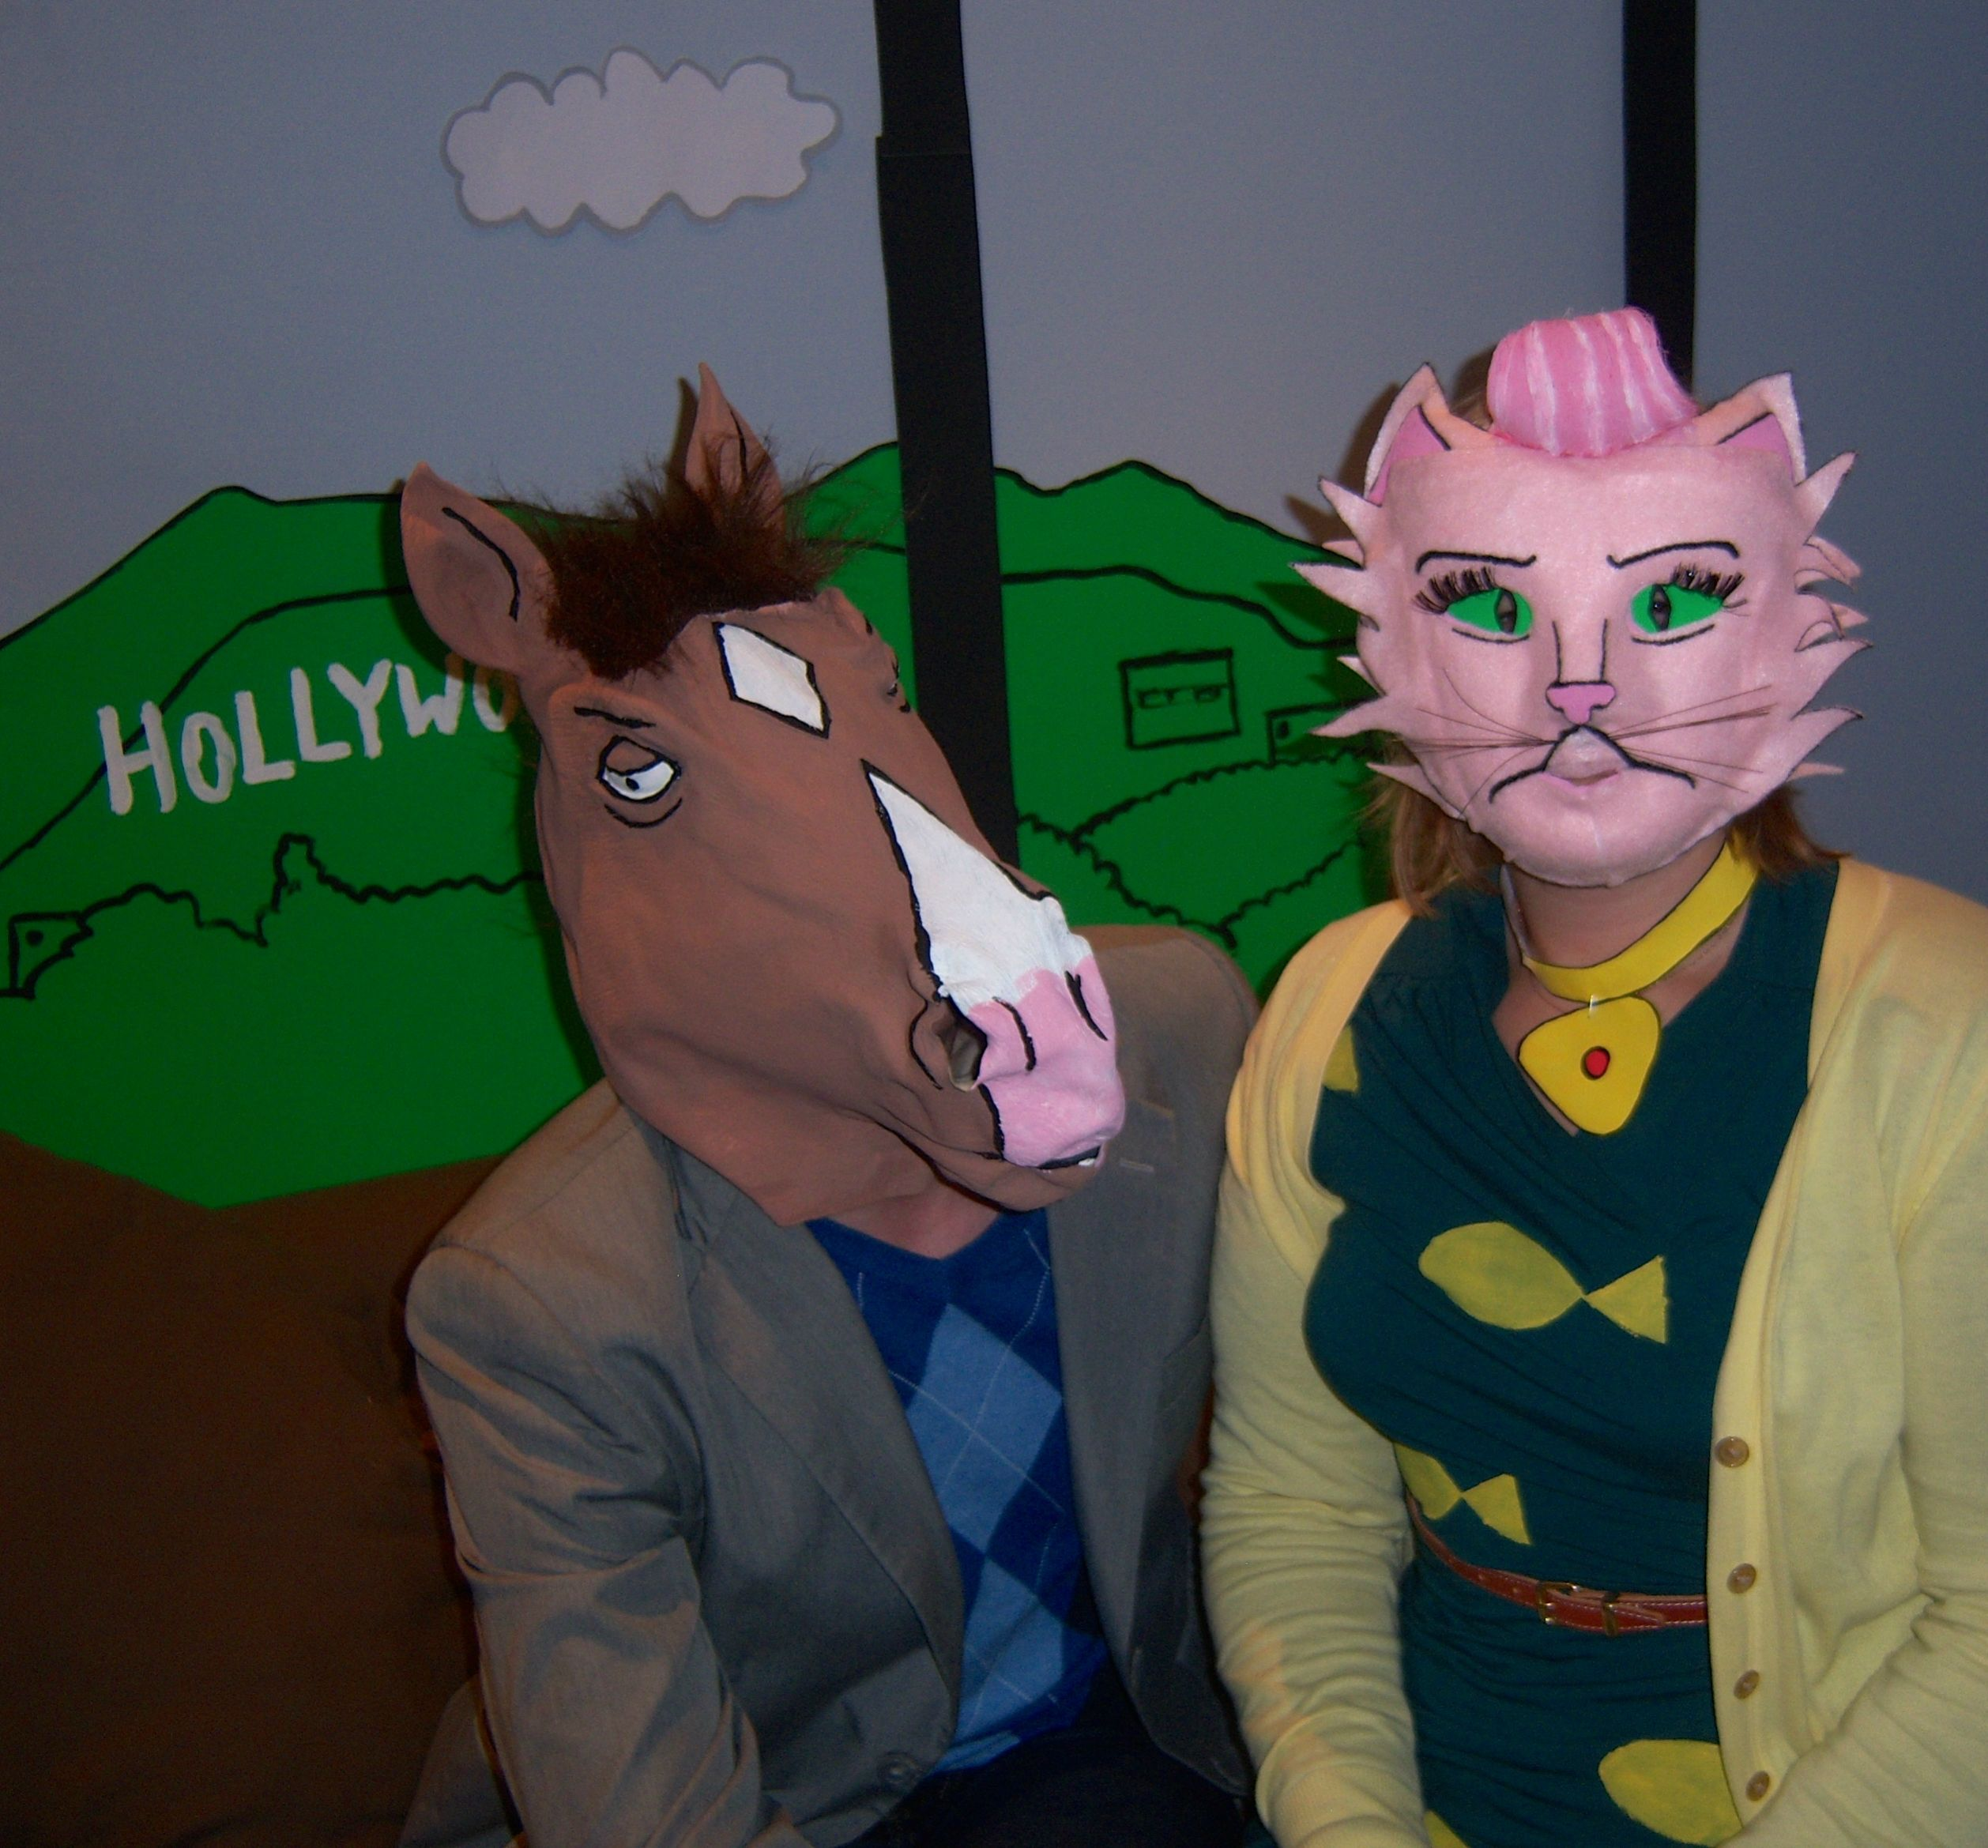 Bojack Horseman costumes | Costumes and Cosplay